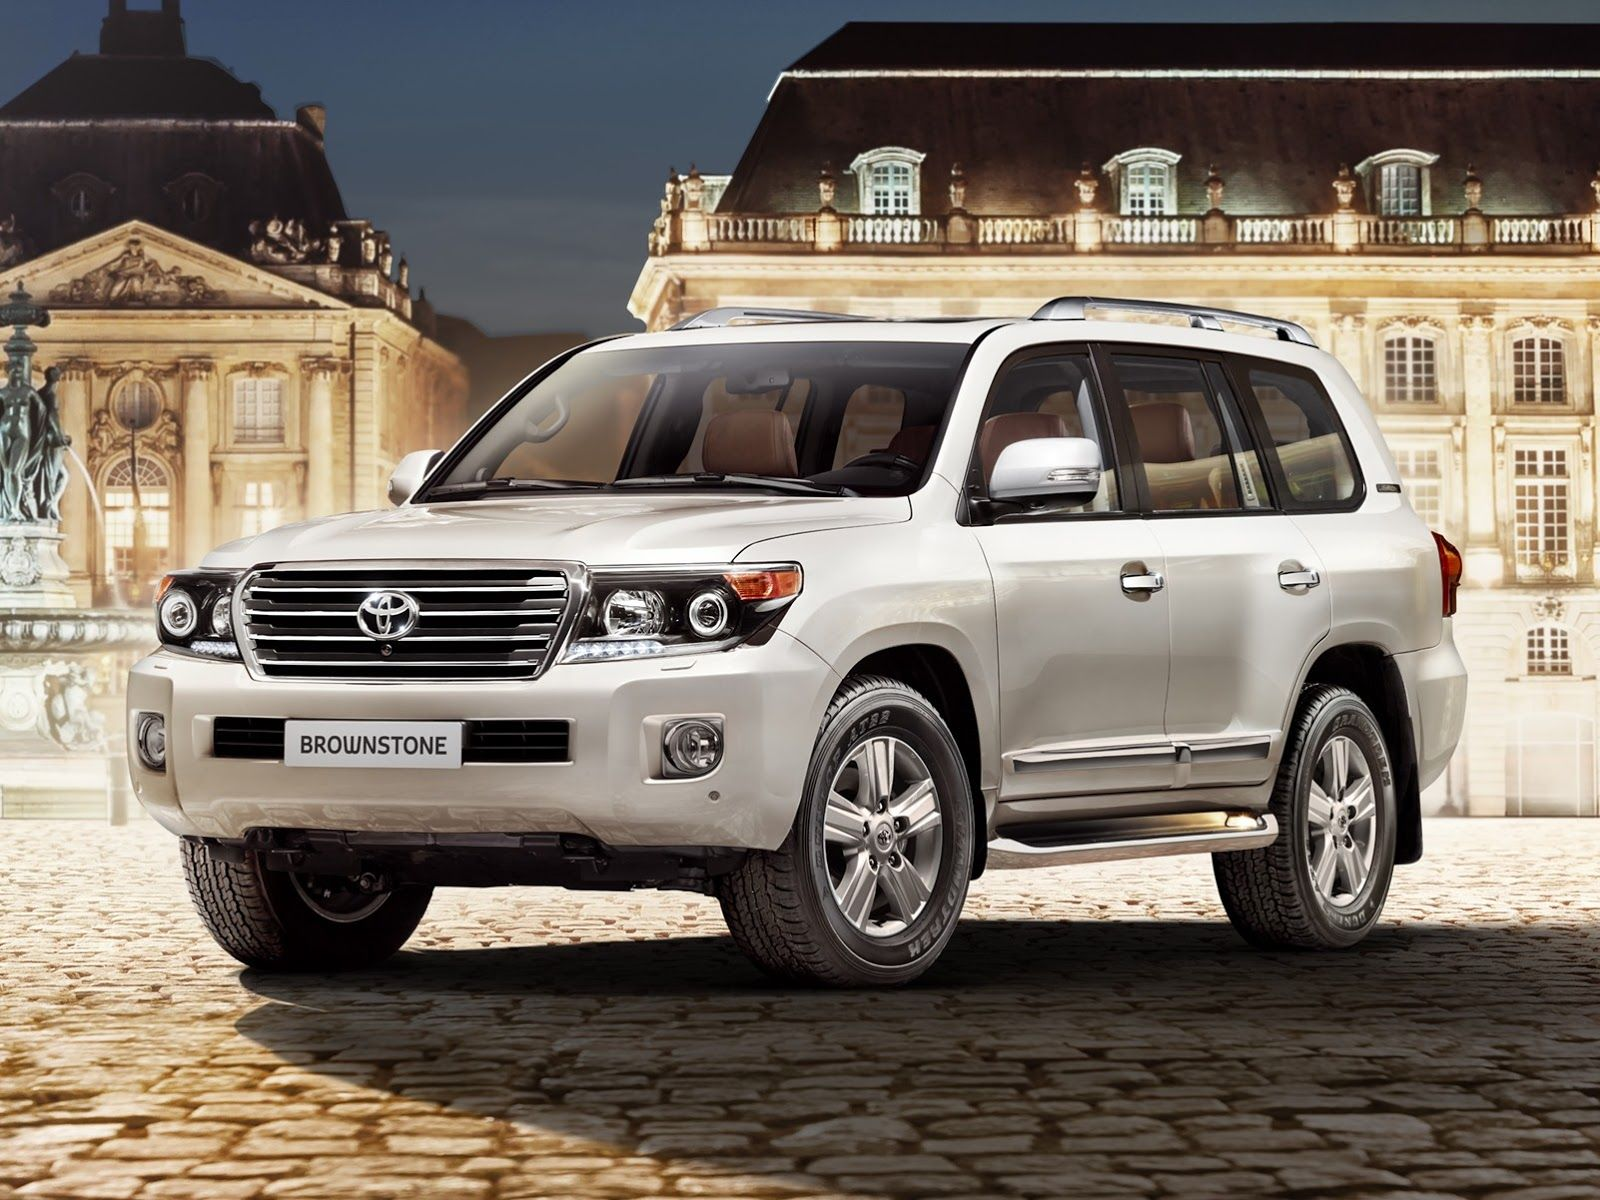 2016 toyota land cruiser redesign and changes     autocarkr com  2016